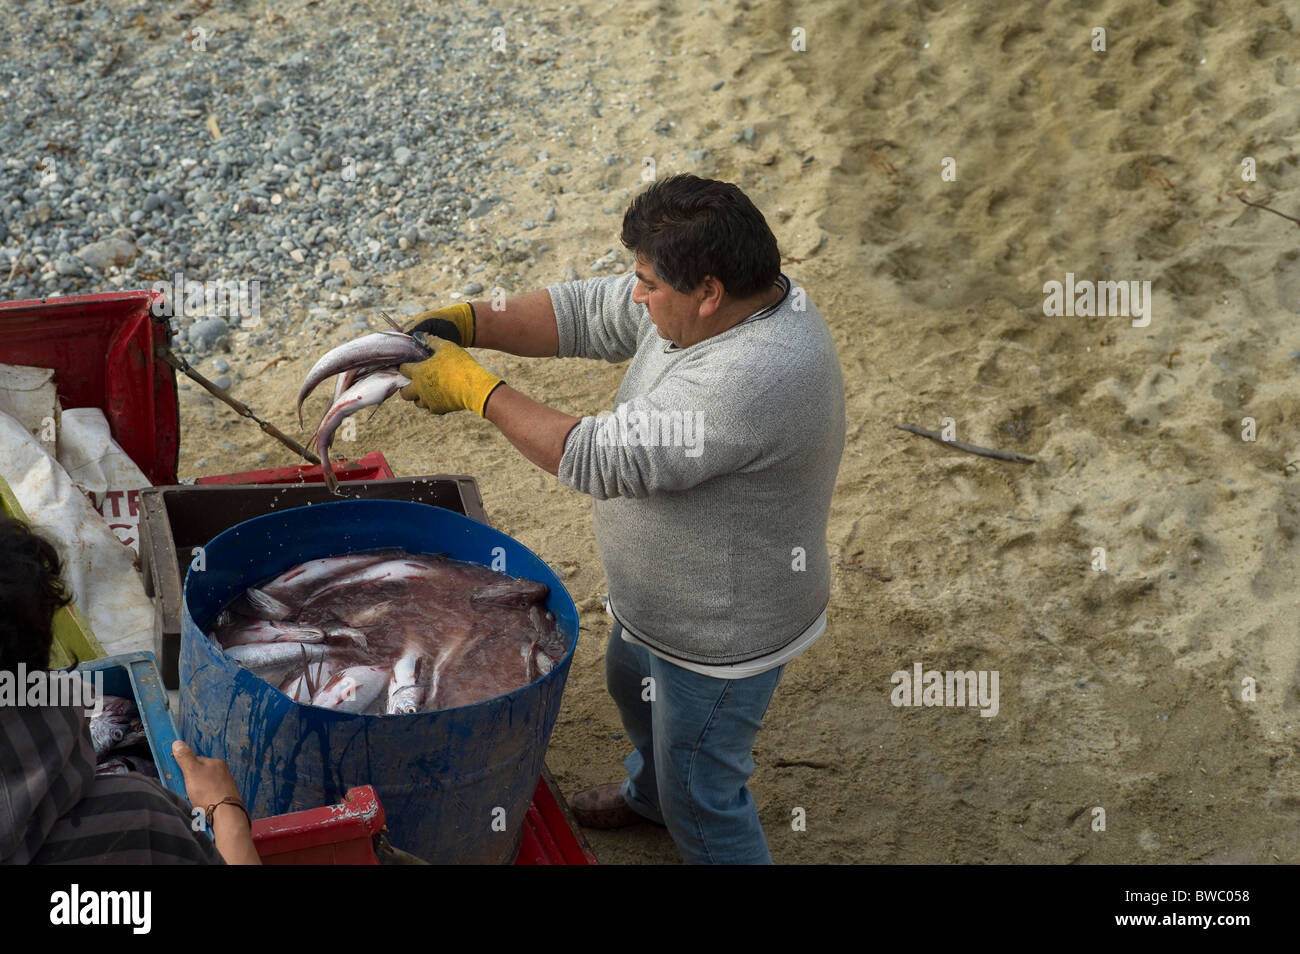 Man cleaning fish in a coastal village, Quintay, Chile - Stock Image